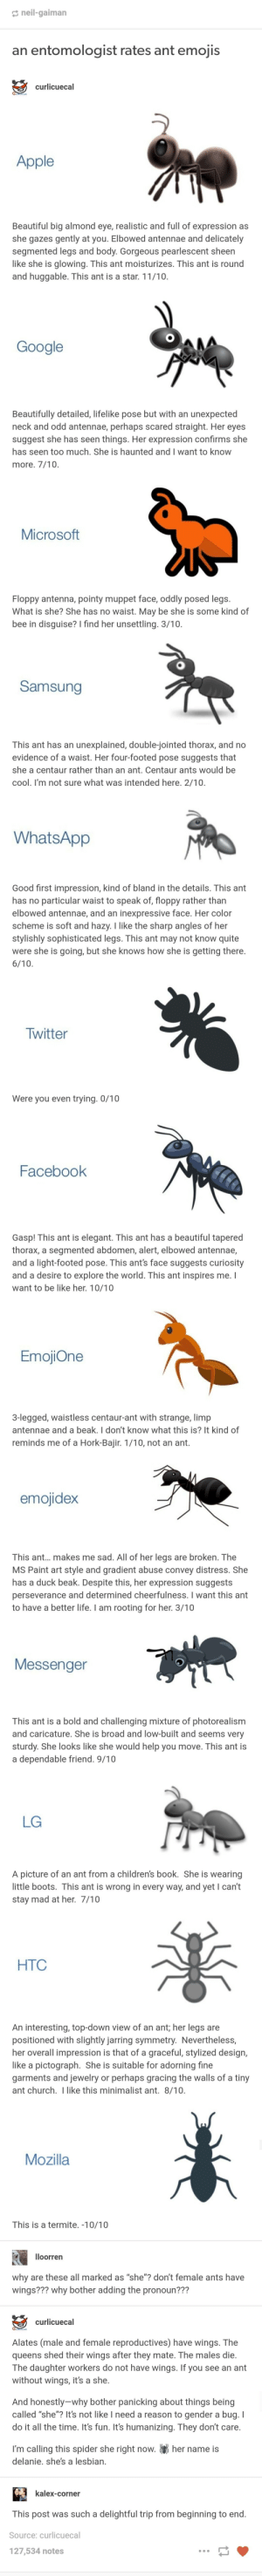 An entomologist rates ants emojis: neil-gaiman  an entomologist rates ant emojis  curlicuecal  CURLICUE  Apple  Beautiful big almond eye, realistic and full of expression as  she gazes gently at you. Elbowed antennae and delicately  segmented legs and body. Gorgeous pearlescent sheen  like she is glowing. This ant moisturizes. This ant is round  and huggable. This ant is a star. 11/10.  Google  Beautifully detailed, lifelike pose but with an unexpected  neck and odd antennae, perhaps scared straight. Her eyes  suggest she has seen things. Her expression confirms she  has seen too much. She is haunted and I want to know  more. 7/10.  Microsoft  Floppy antenna, pointy muppet face, oddly posed legs.  What is she? She has no waist. May be she is some kind of  bee in disguise? I find her unsettling. 3/10.  Samsung  This ant has an unexplained, double-jointed thorax, and no  evidence of a waist. Her four-footed pose suggests that  she a centaur rather than an ant. Centaur ants would be  cool. I'm not sure what was intended here. 2/10.  WhatsApp  Good first impression, kind of bland in the details. This ant  has no particular waist to speak of, floppy rather than  elbowed antennae, and an inexpressive face. Her color  scheme is soft and hazy. I like the sharp angles of her  stylishly sophisticated legs. This ant may not know quite  were she is going, but she knows how she is getting there.  6/10  Twitter  Were you even trying. 0/10  Facebook  Gasp! This ant is elegant. This ant has a beautiful tapered  thorax, a segmented abdomen, alert, elbowed antennae,  and a light-footed pose. This ant's face suggests curiosity  and a desire to explore the world. This ant inspires me. I  want to be like her. 10/10  EmojiOne  3-legged, waistless centaur-ant with strange, limp  antennae and a beak. I don't know what this is? It kind of  reminds me of a Hork-Bajir. 1/10, not an ant.  emojidex  This ant... makes me sad. All of her legs are broken. The  MS Paint art style and gradient abuse